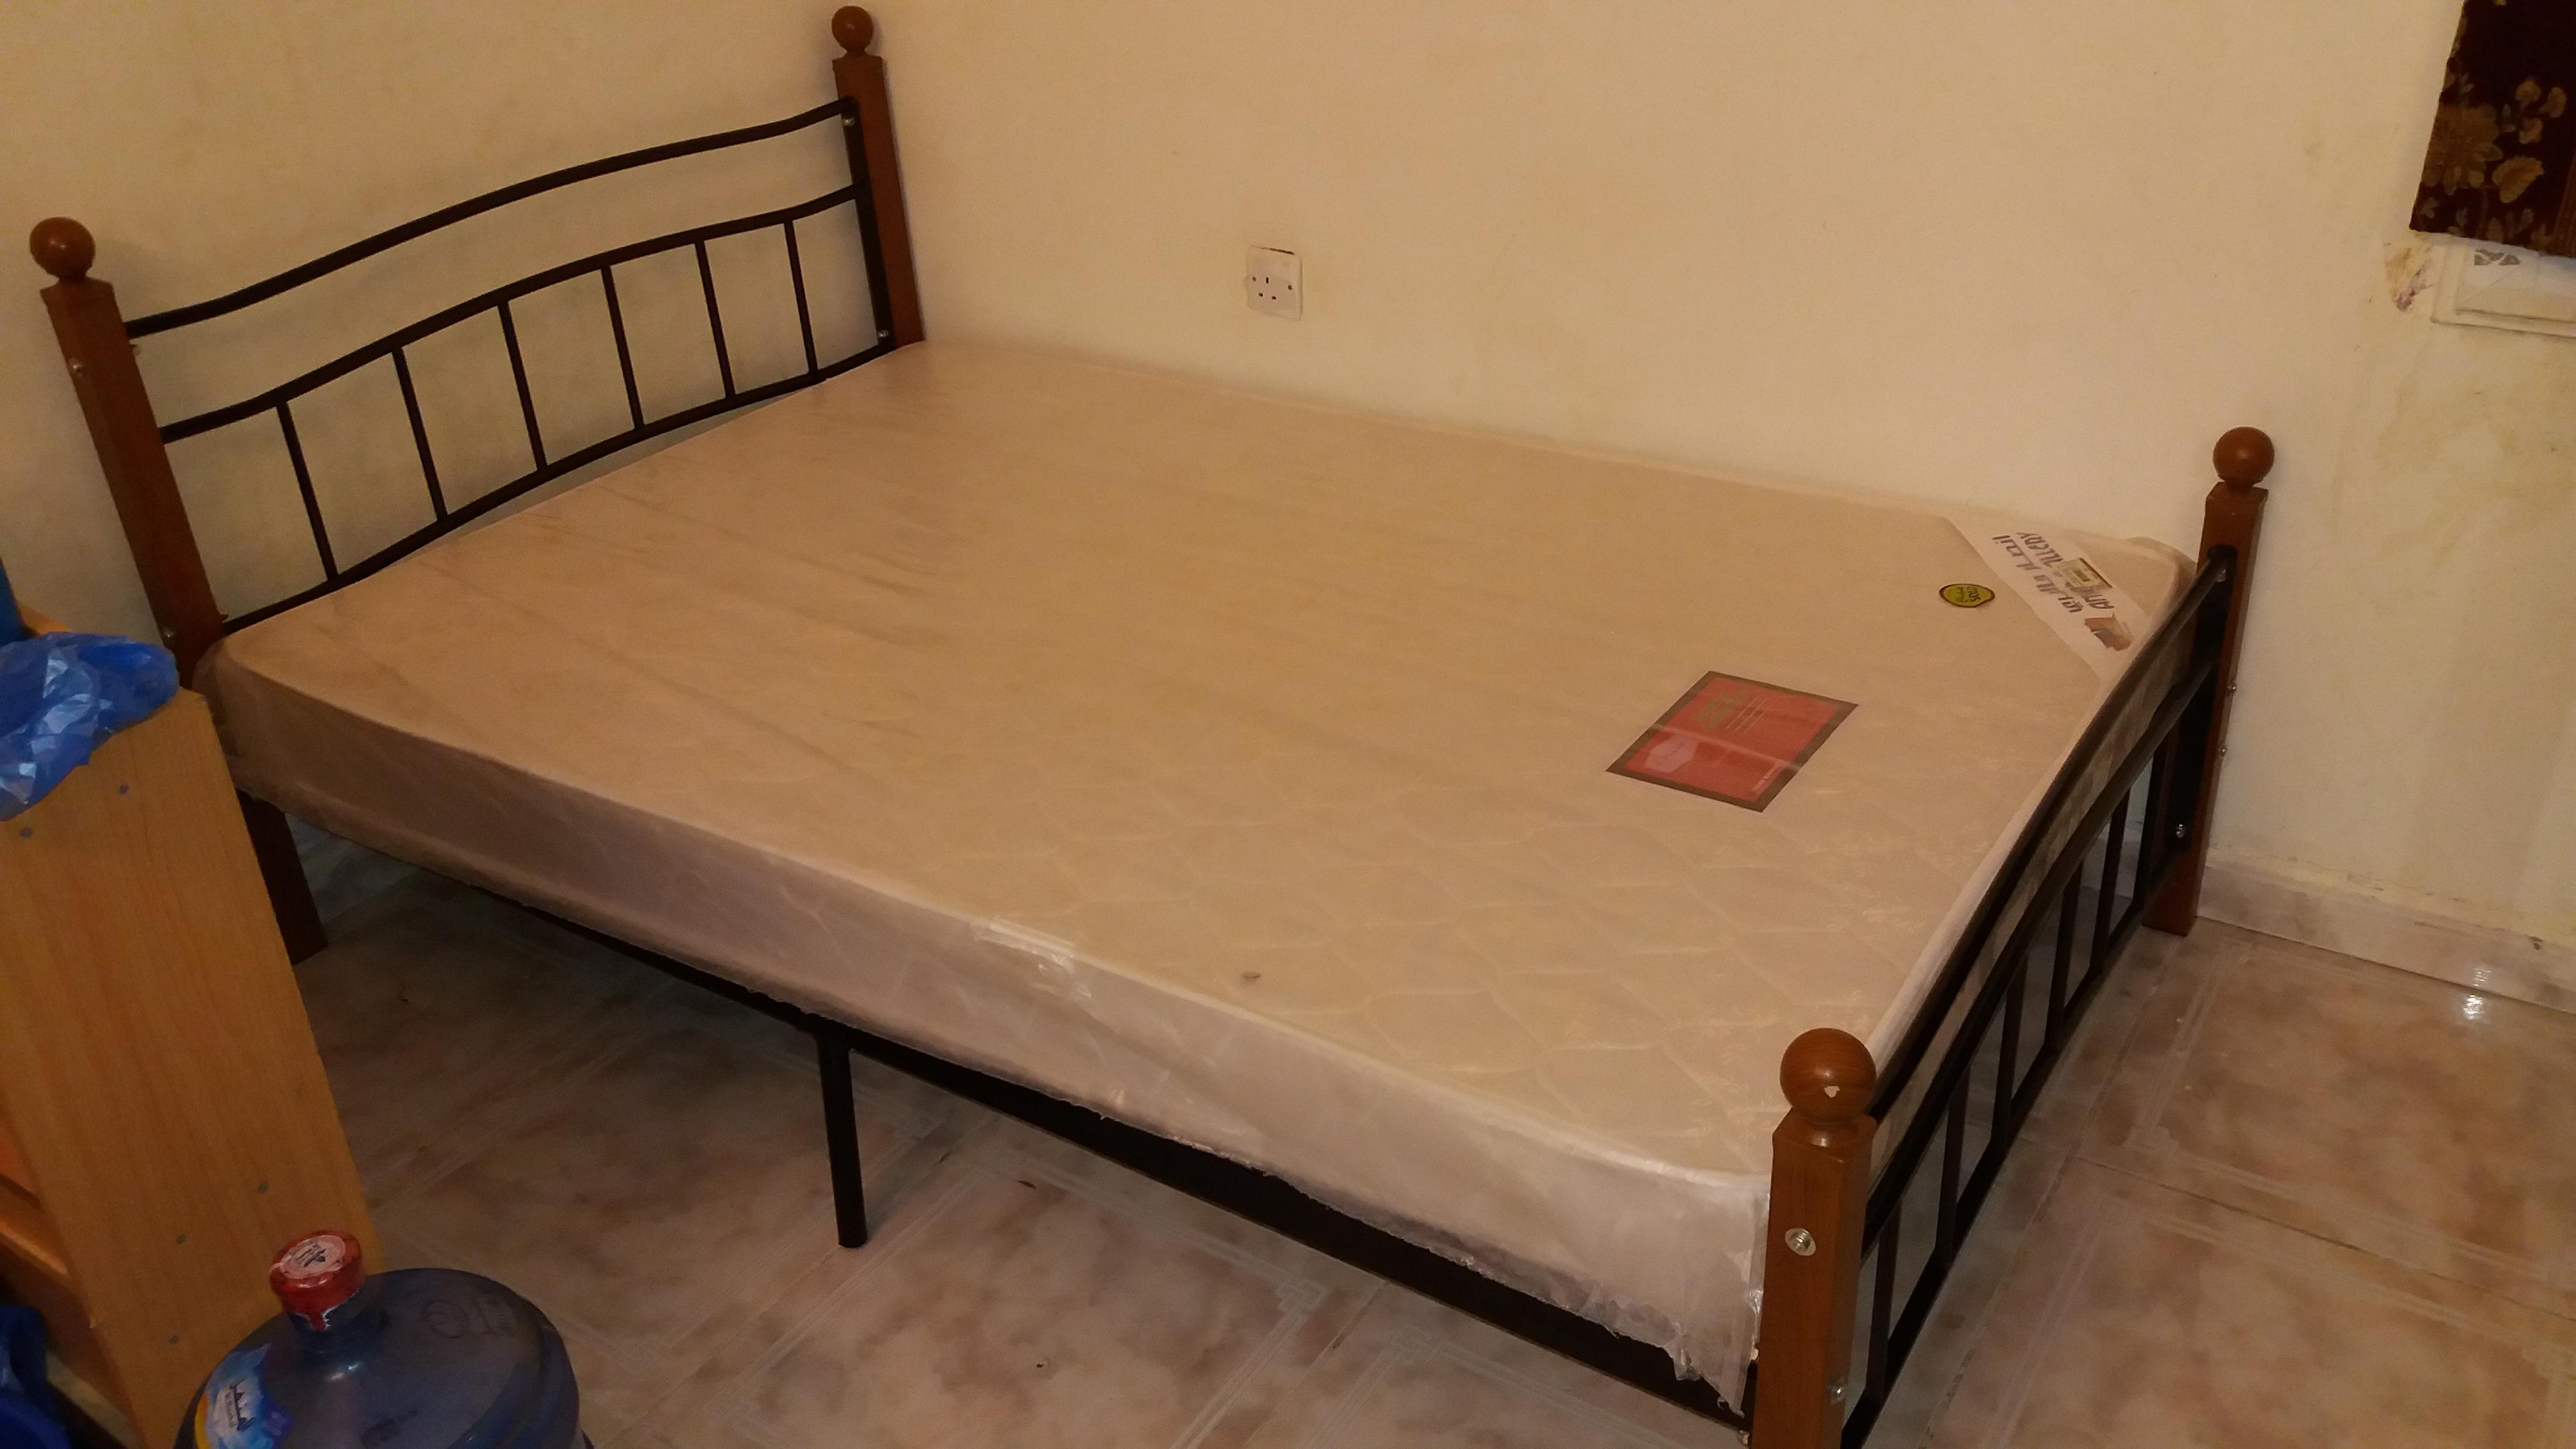 Bed 120 X 190 Bed Frame 120 X 190 With Matress Qatar Living